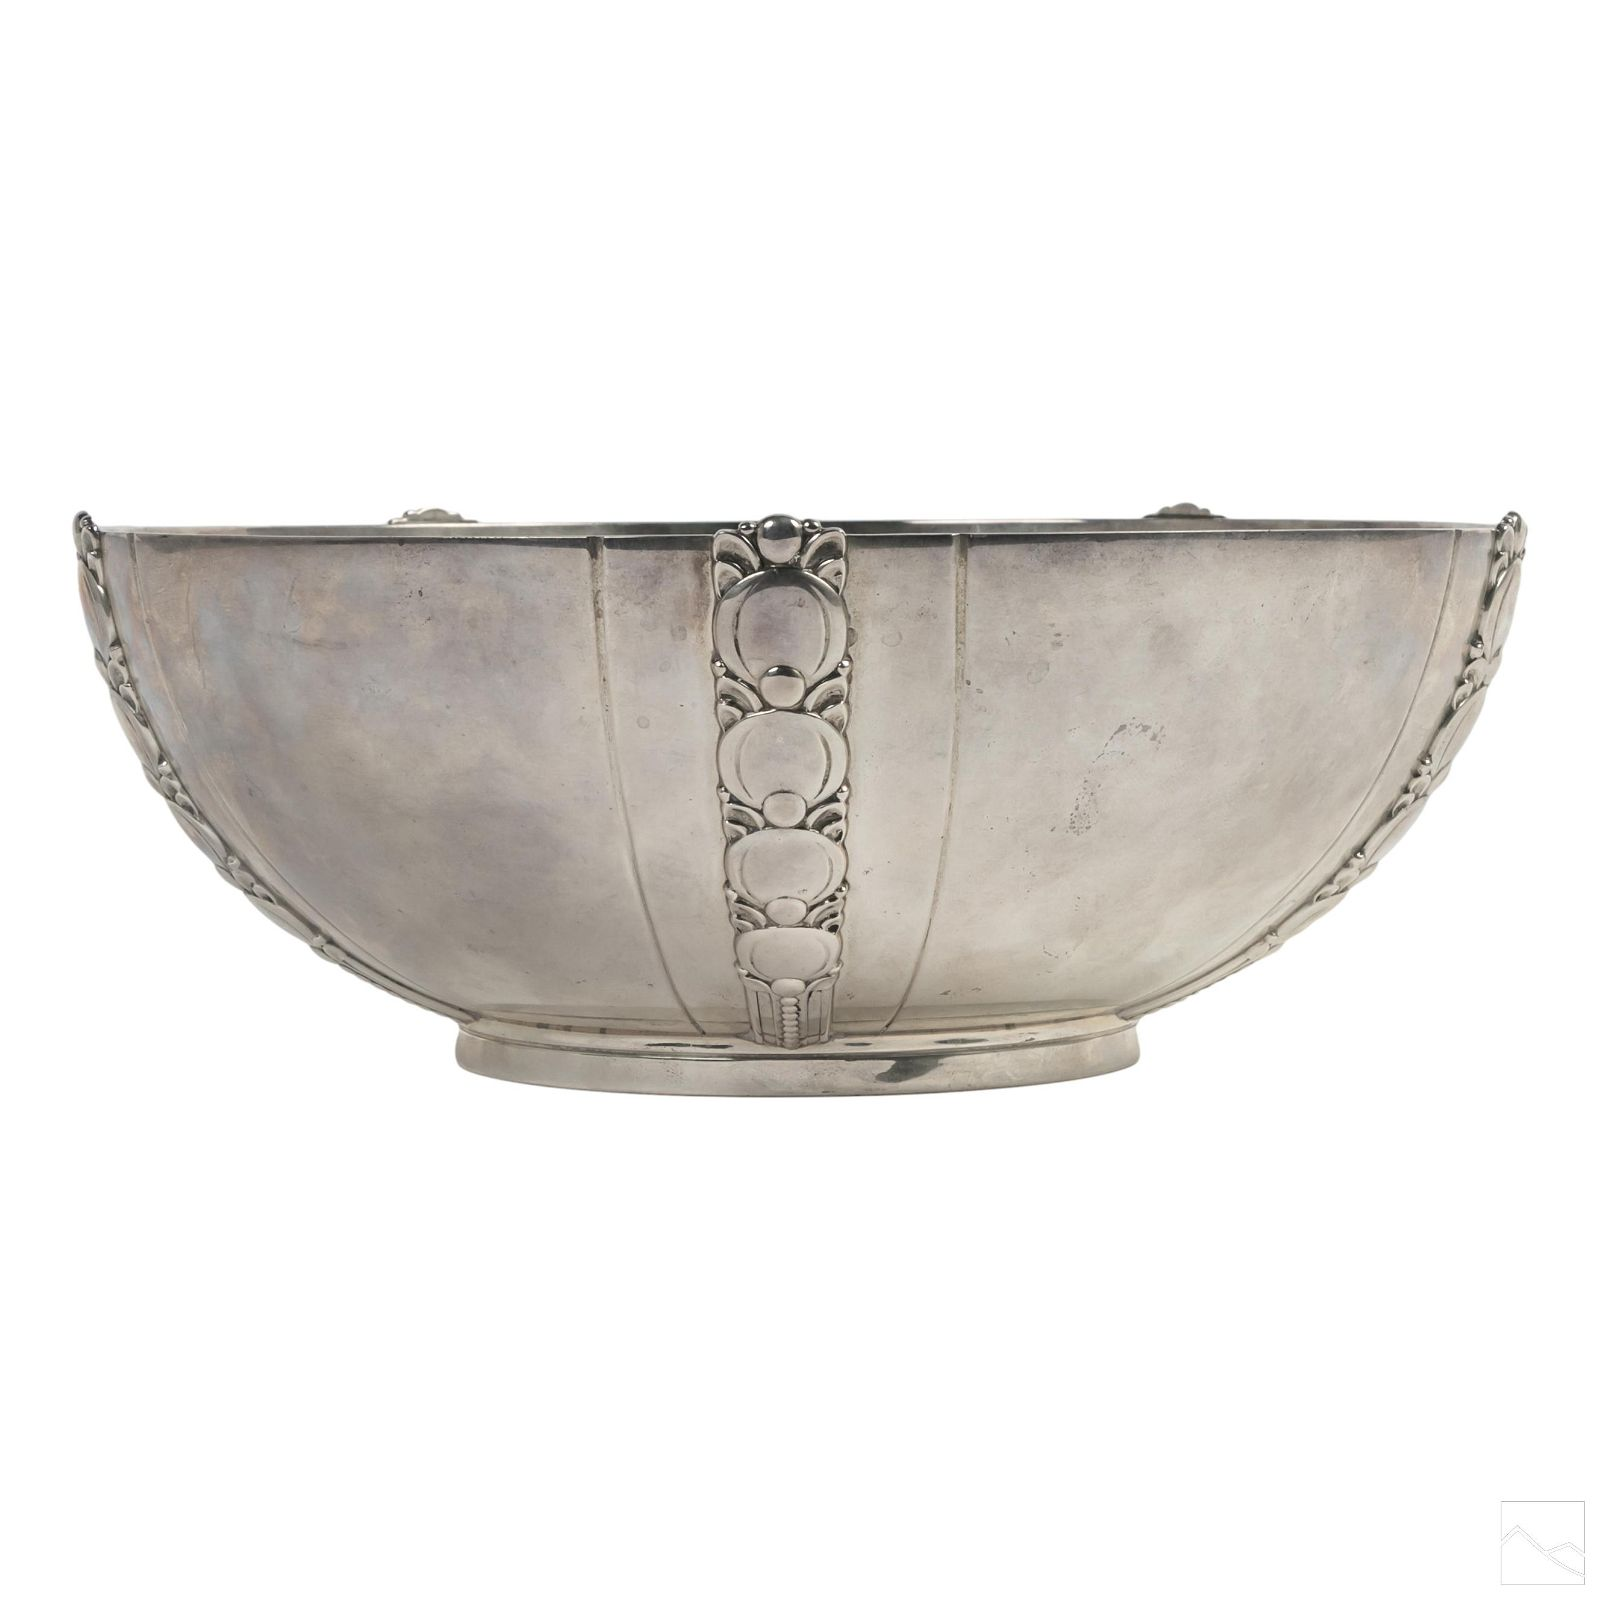 Tiffany Sterling Silver Tomato Serving Bowl 800g